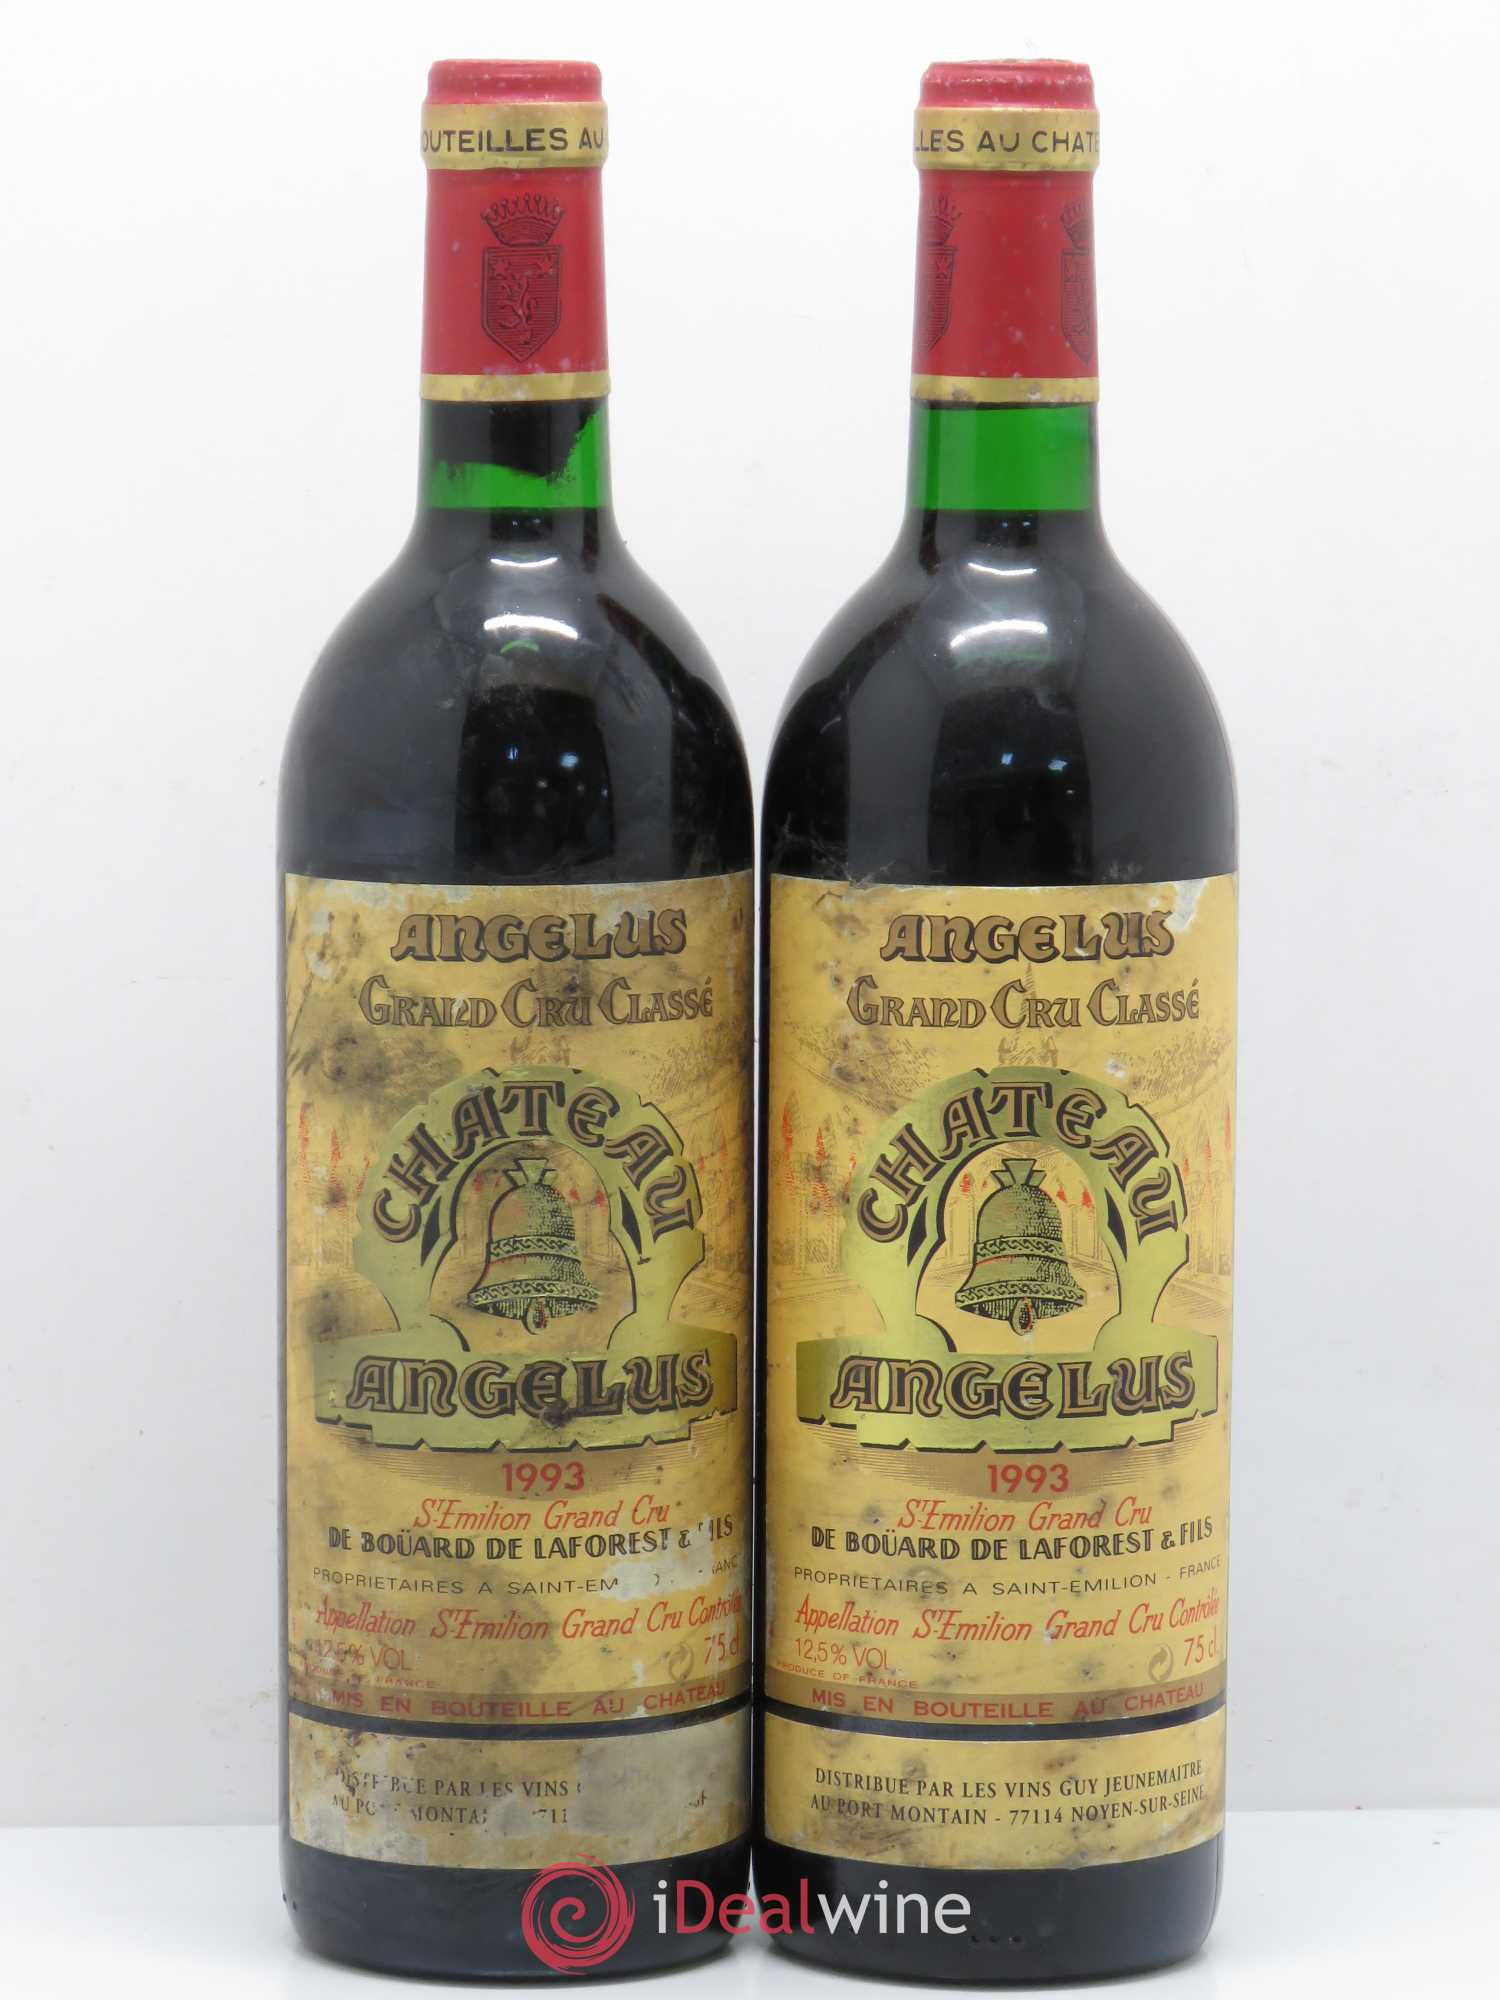 Château Angélus 1er Grand Cru Classé A  1993 - Lot of 2 Bottles